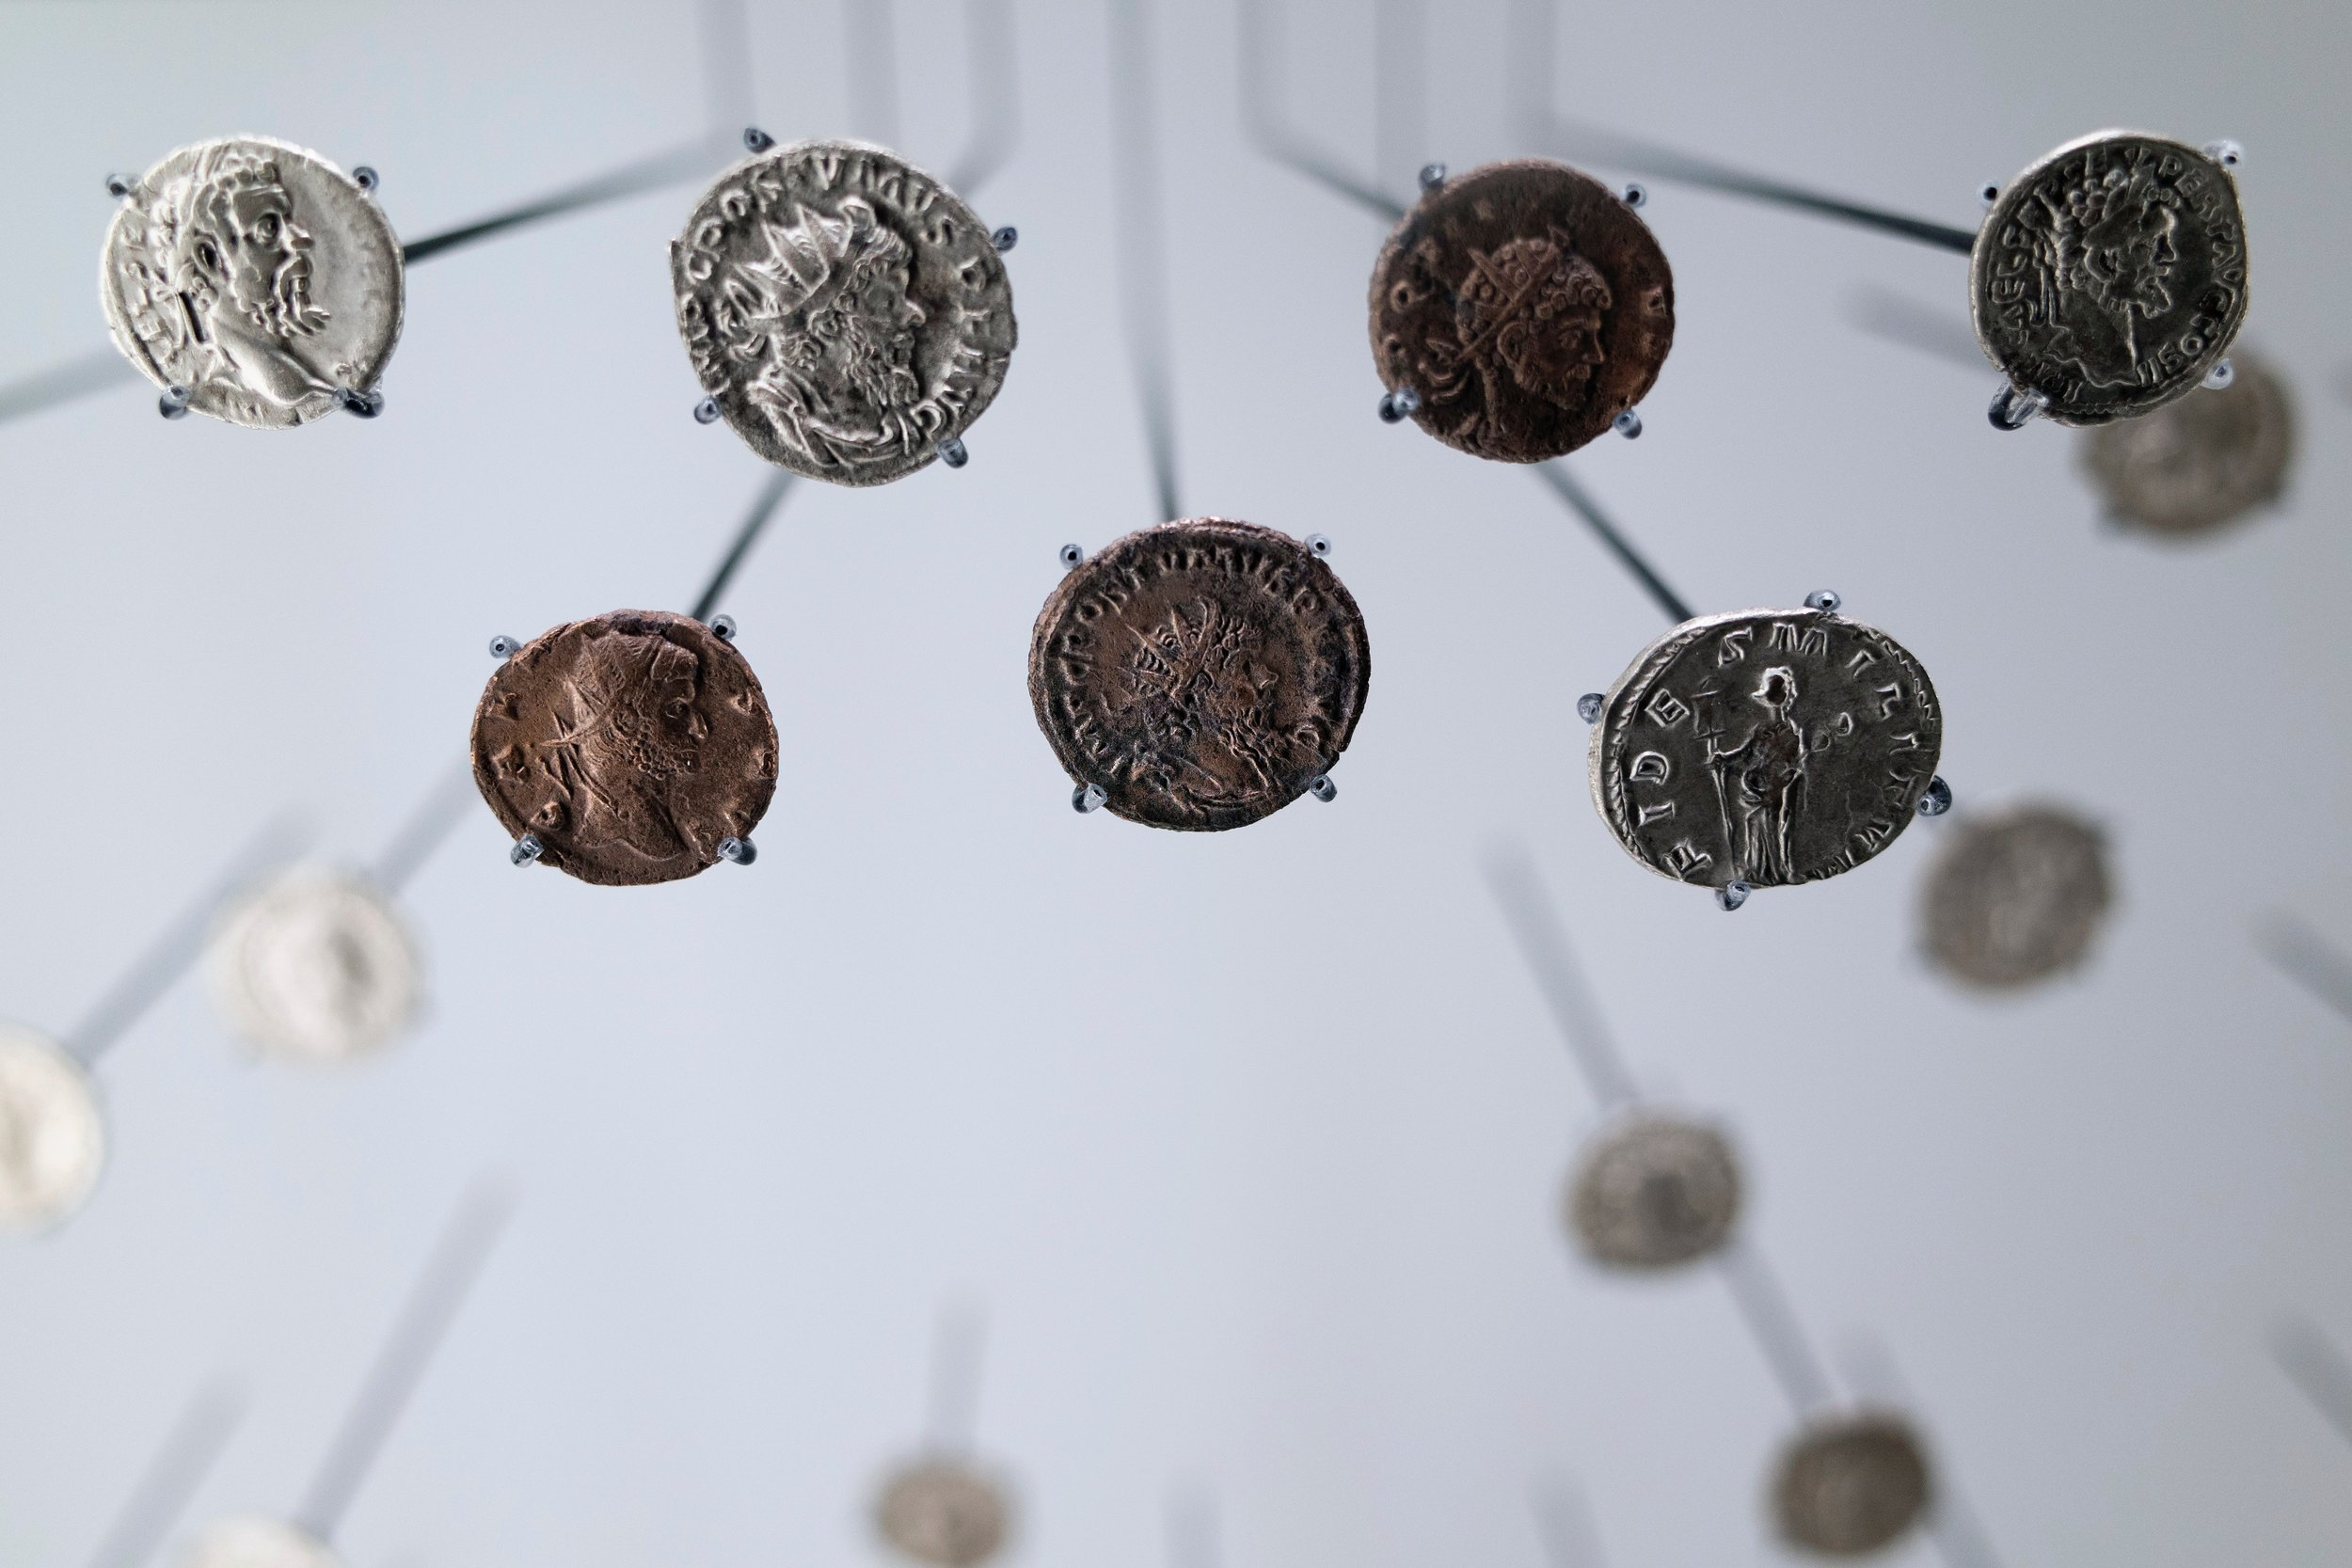 Old coins from the Roman Empire